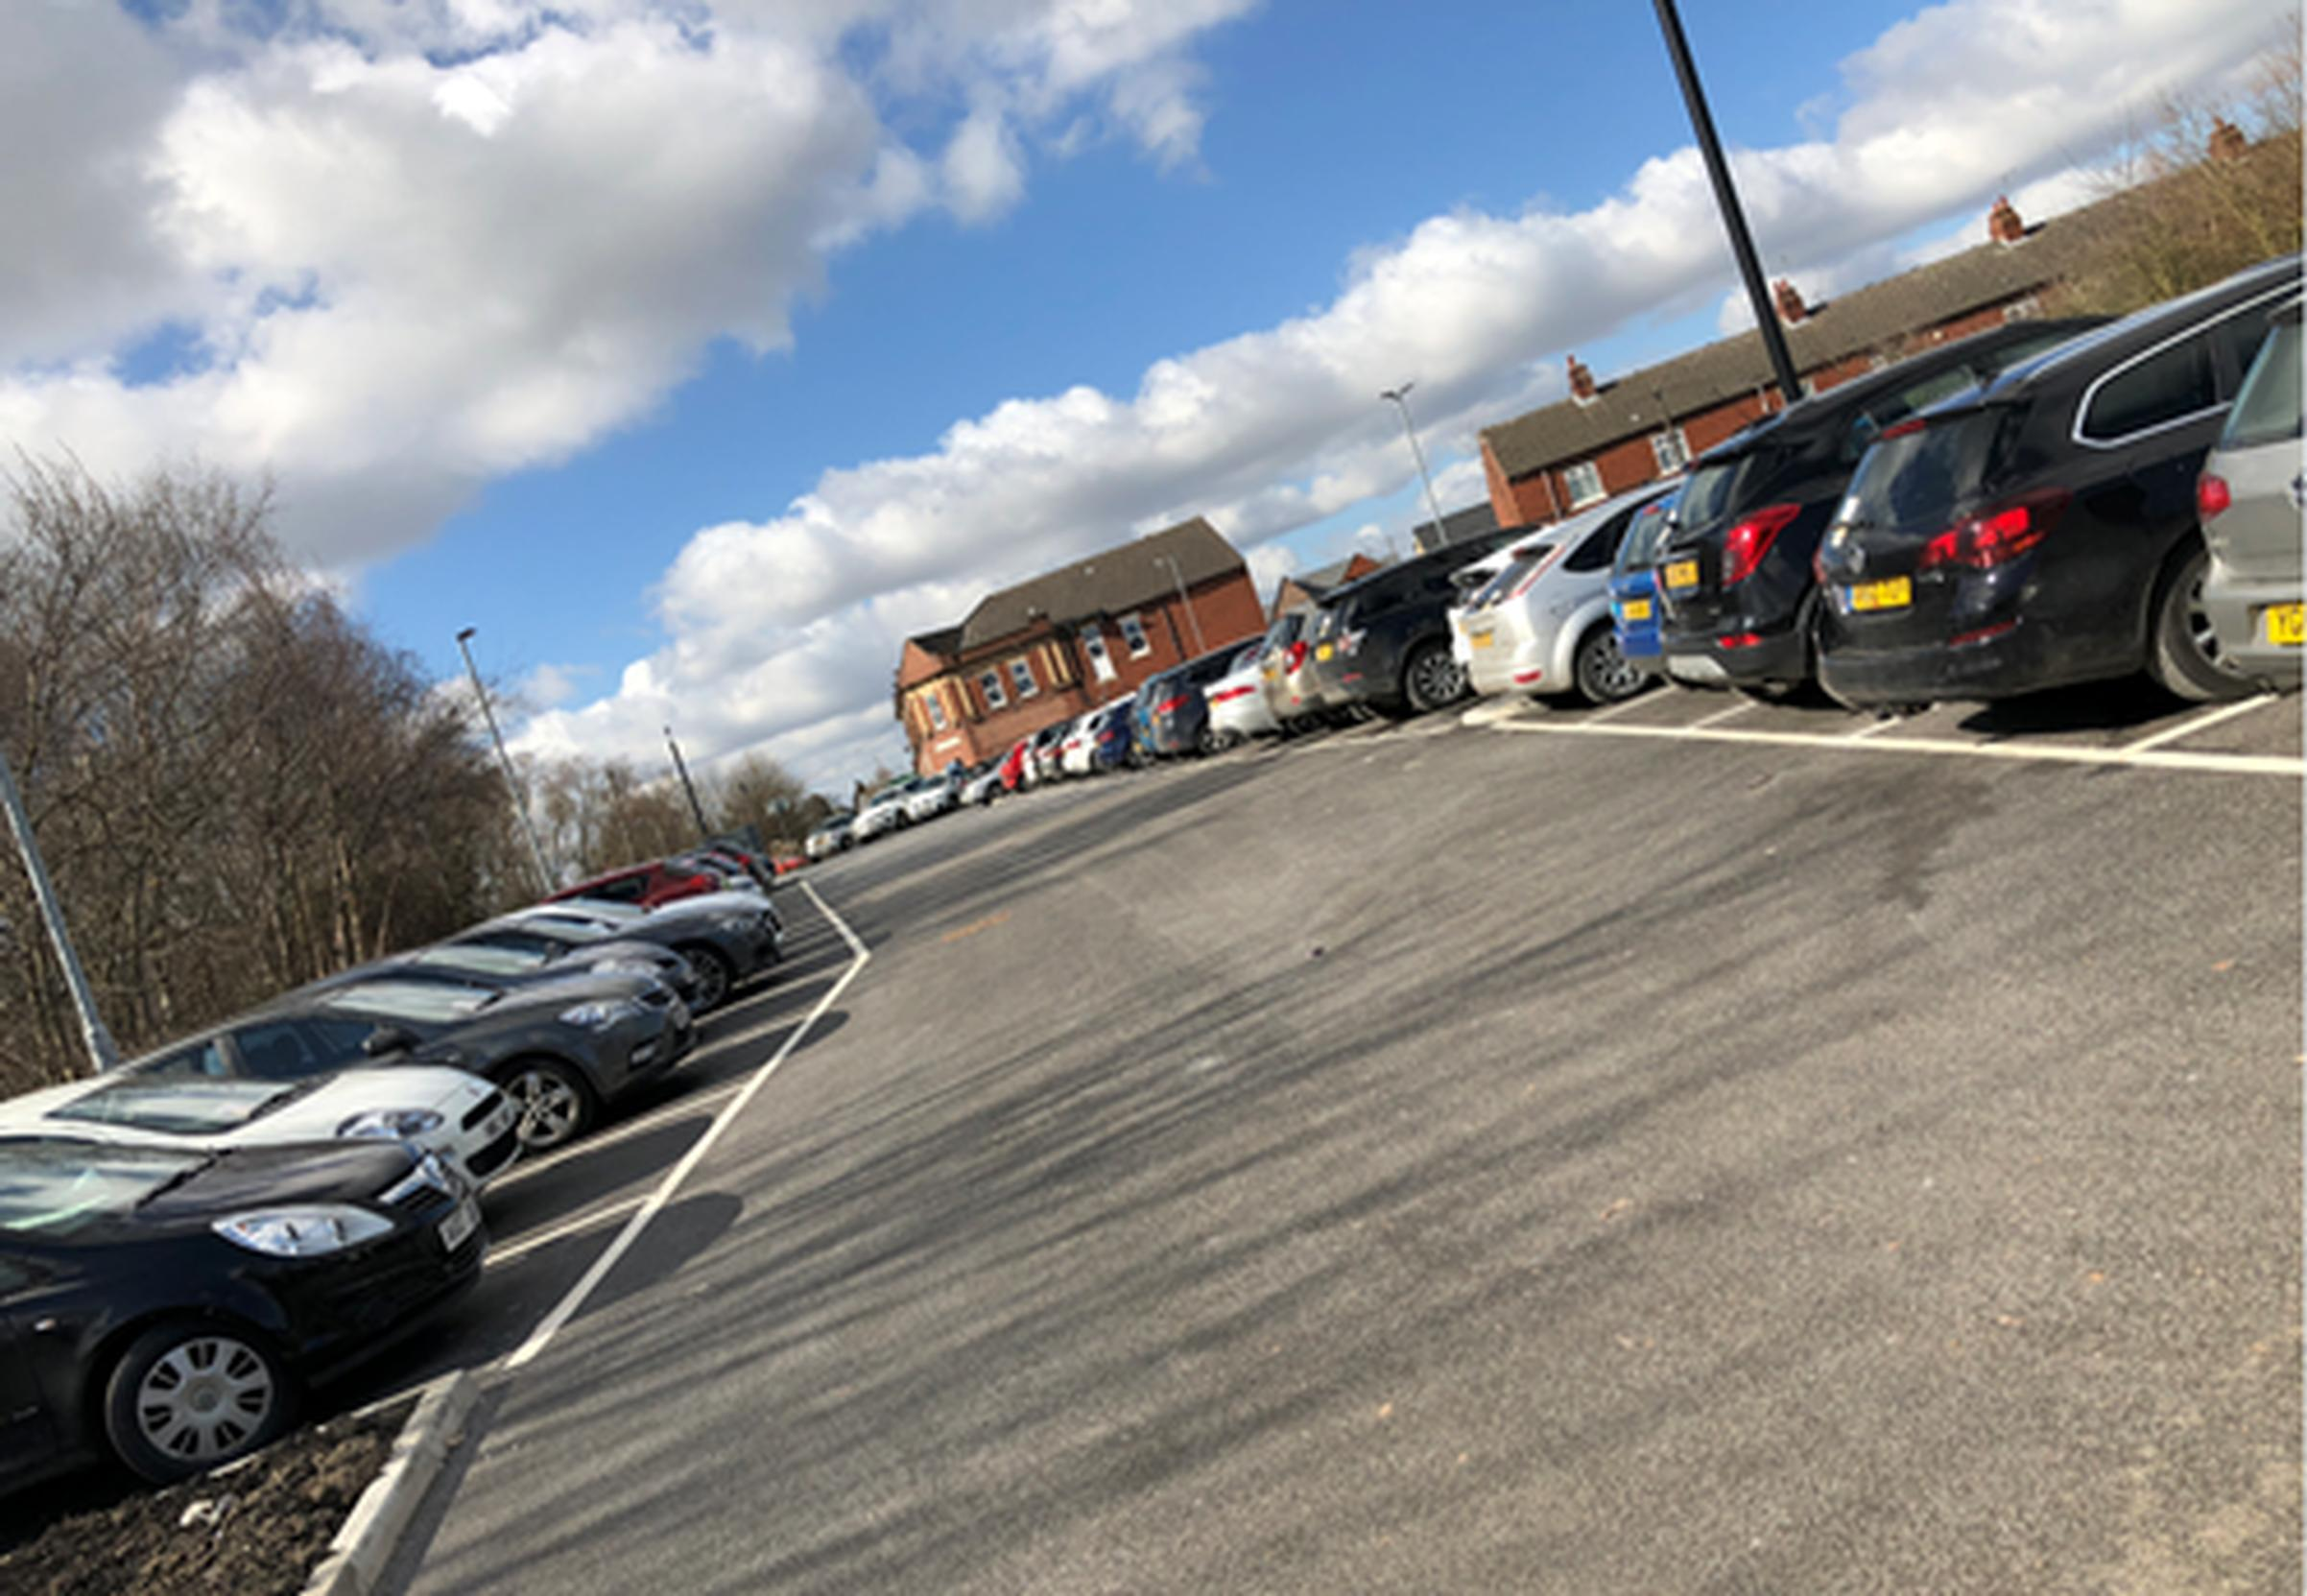 West Yorkshire Combined Authority invests in expanding station car parks